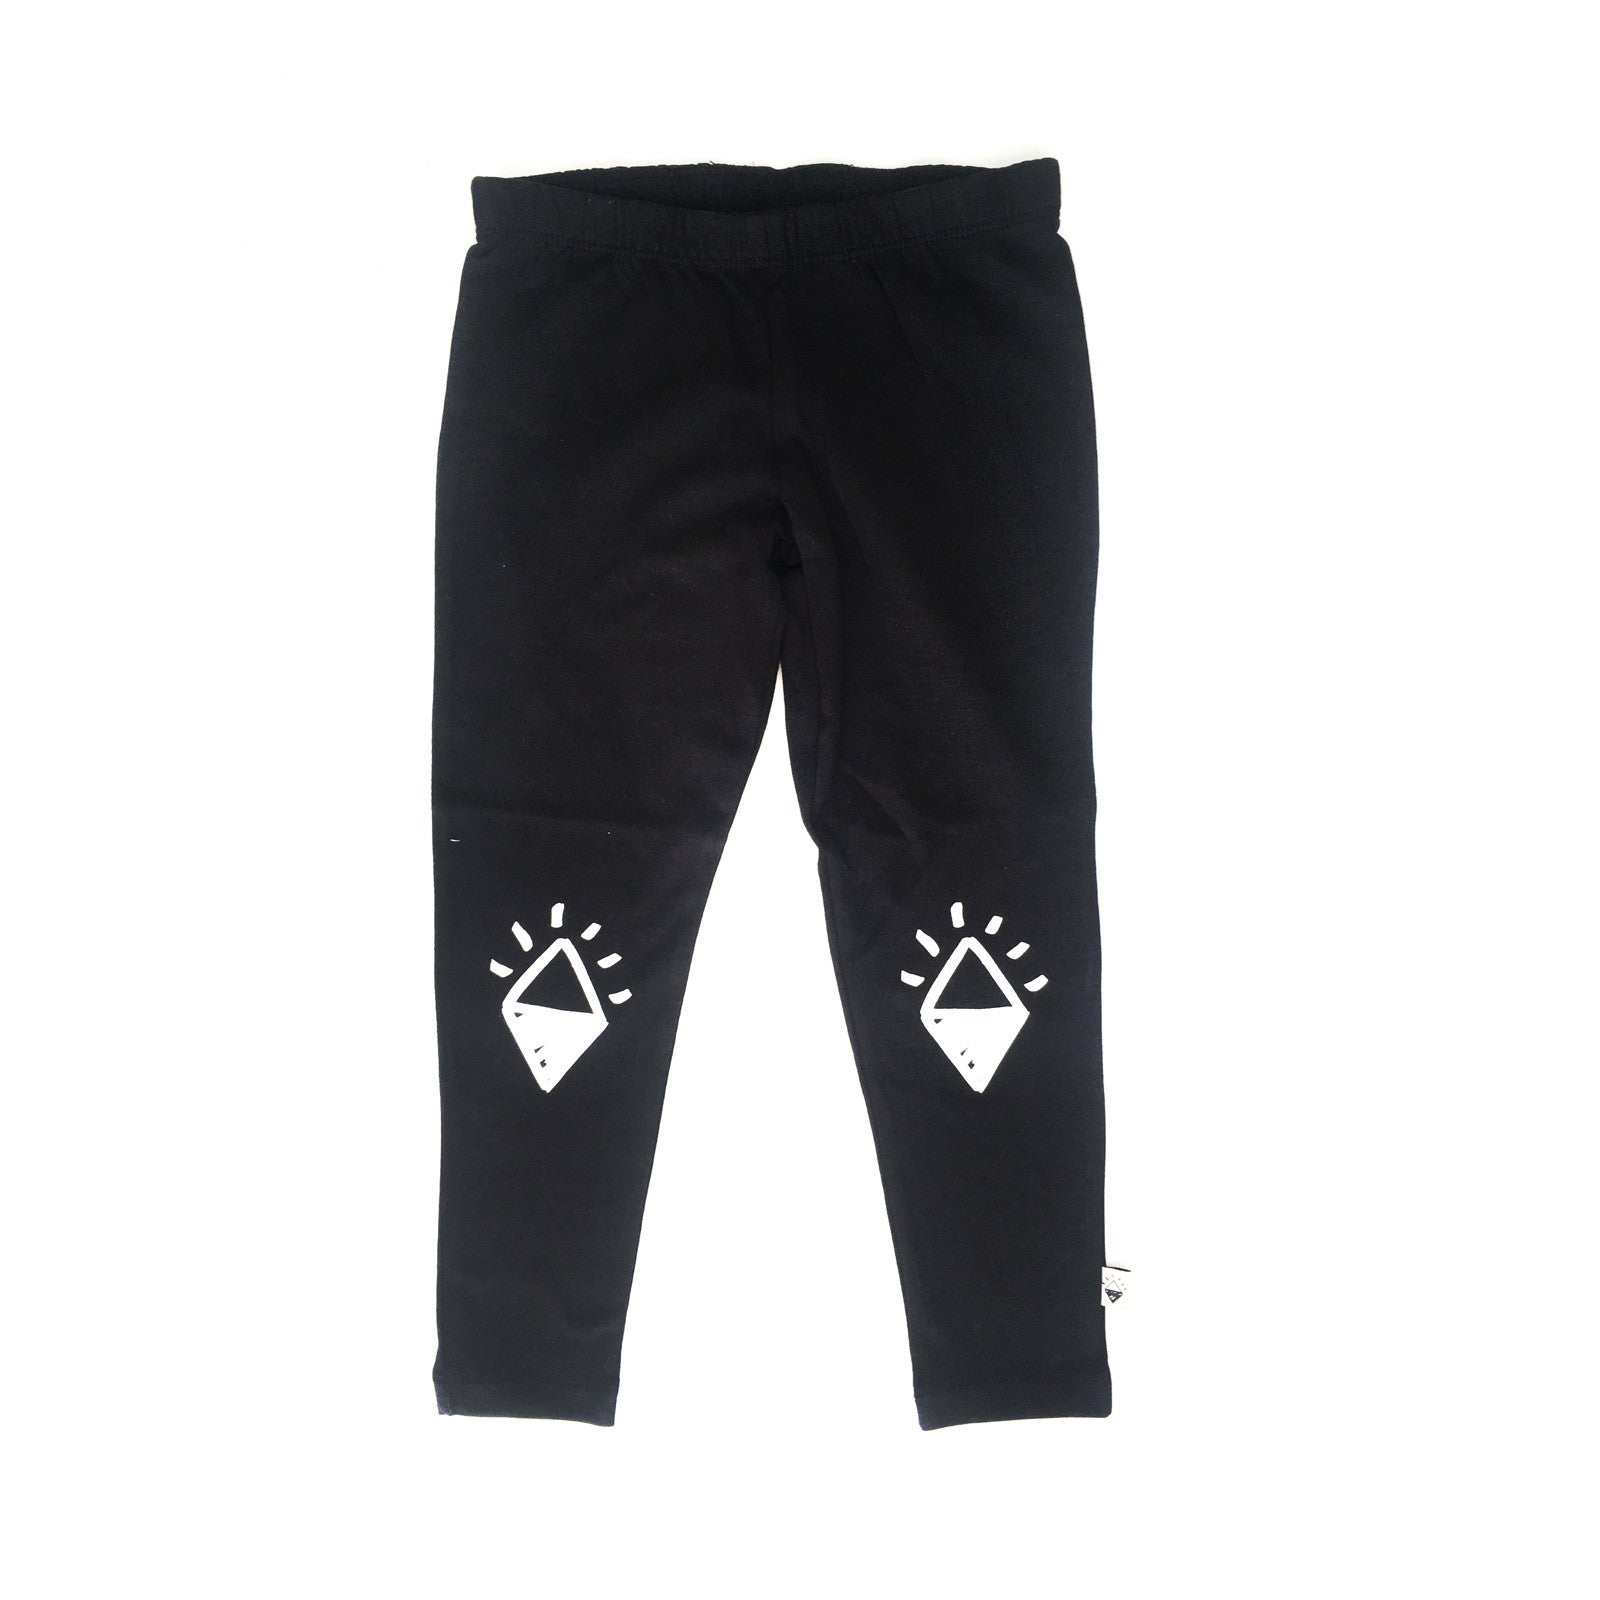 Diamond Knee Girl leggings